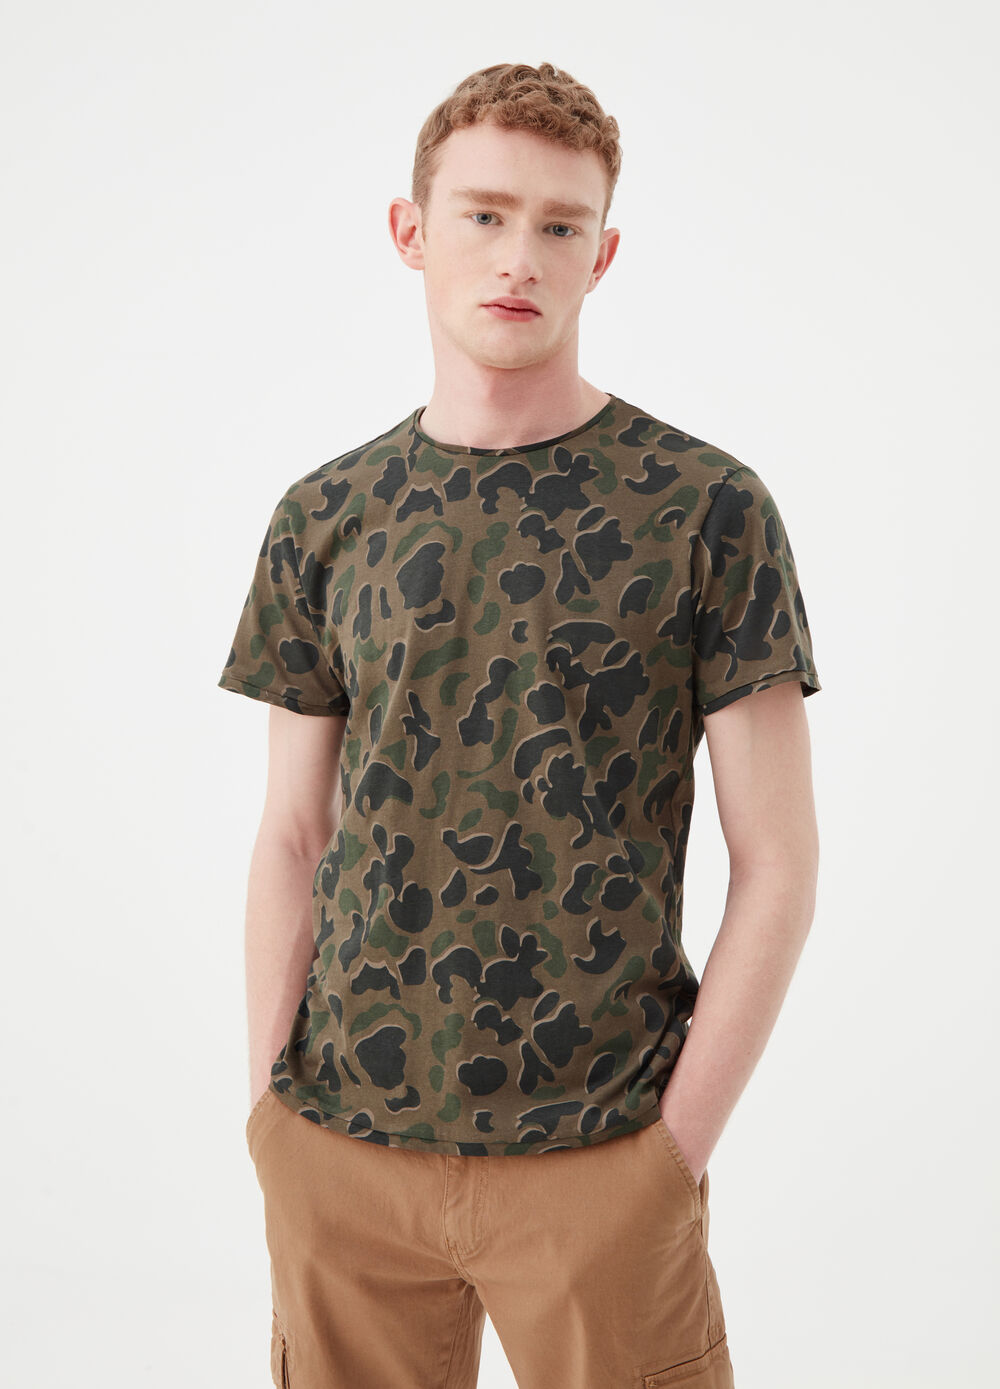 T-shirt with military pattern